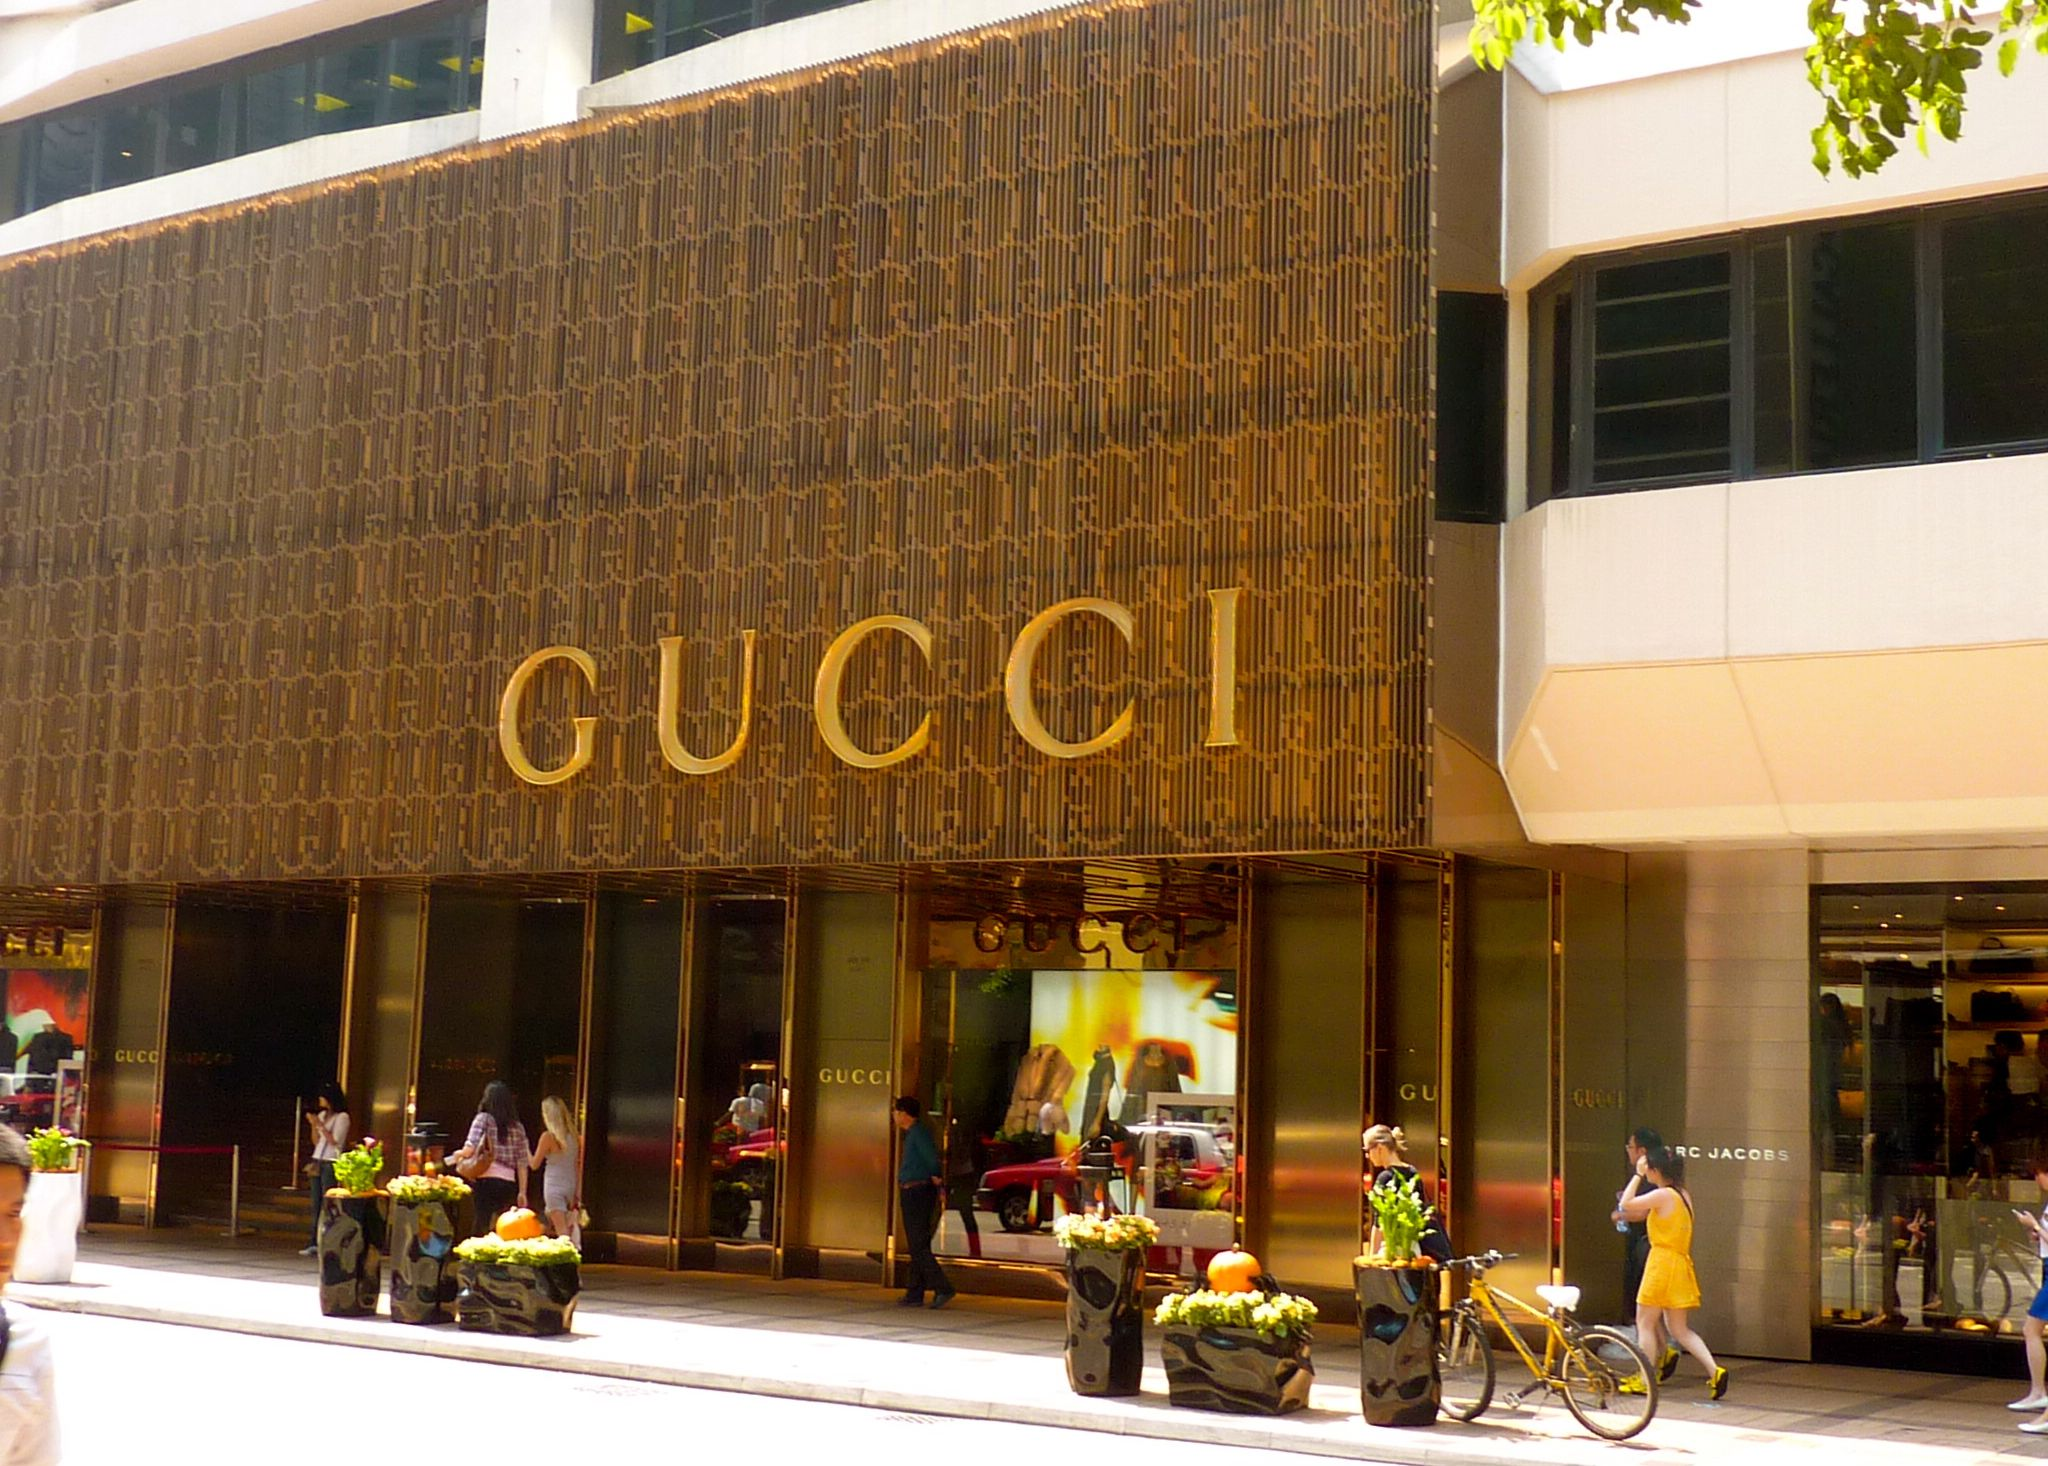 gucci stores - Google Search | Storefronts | Pinterest | Gucci